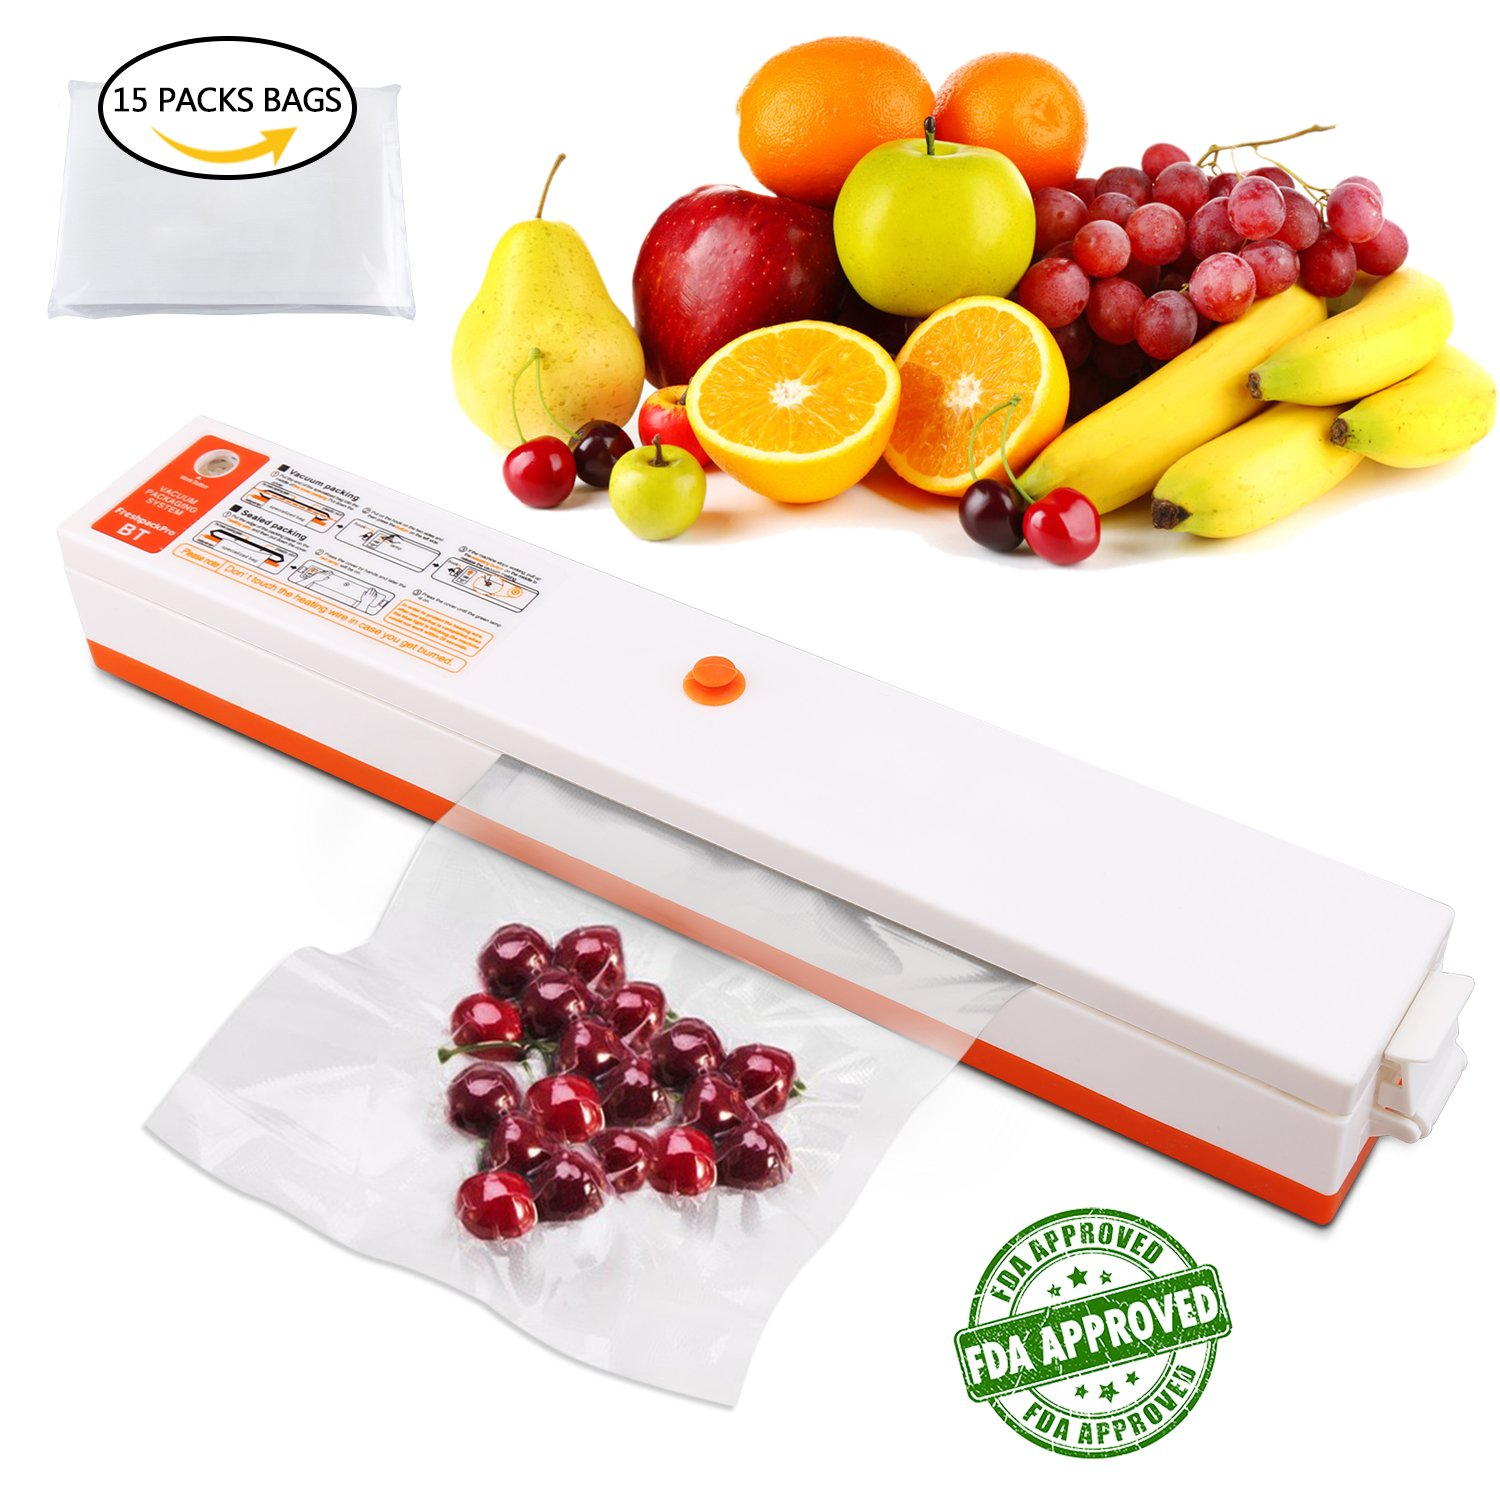 - Vacuum Sealer Machine -, Samshow Automatic Vacuum Sealing System for Food Sealers,Portable Vacuum Packing and Sealing with 15 FREE Sealing Storage Bags (white)